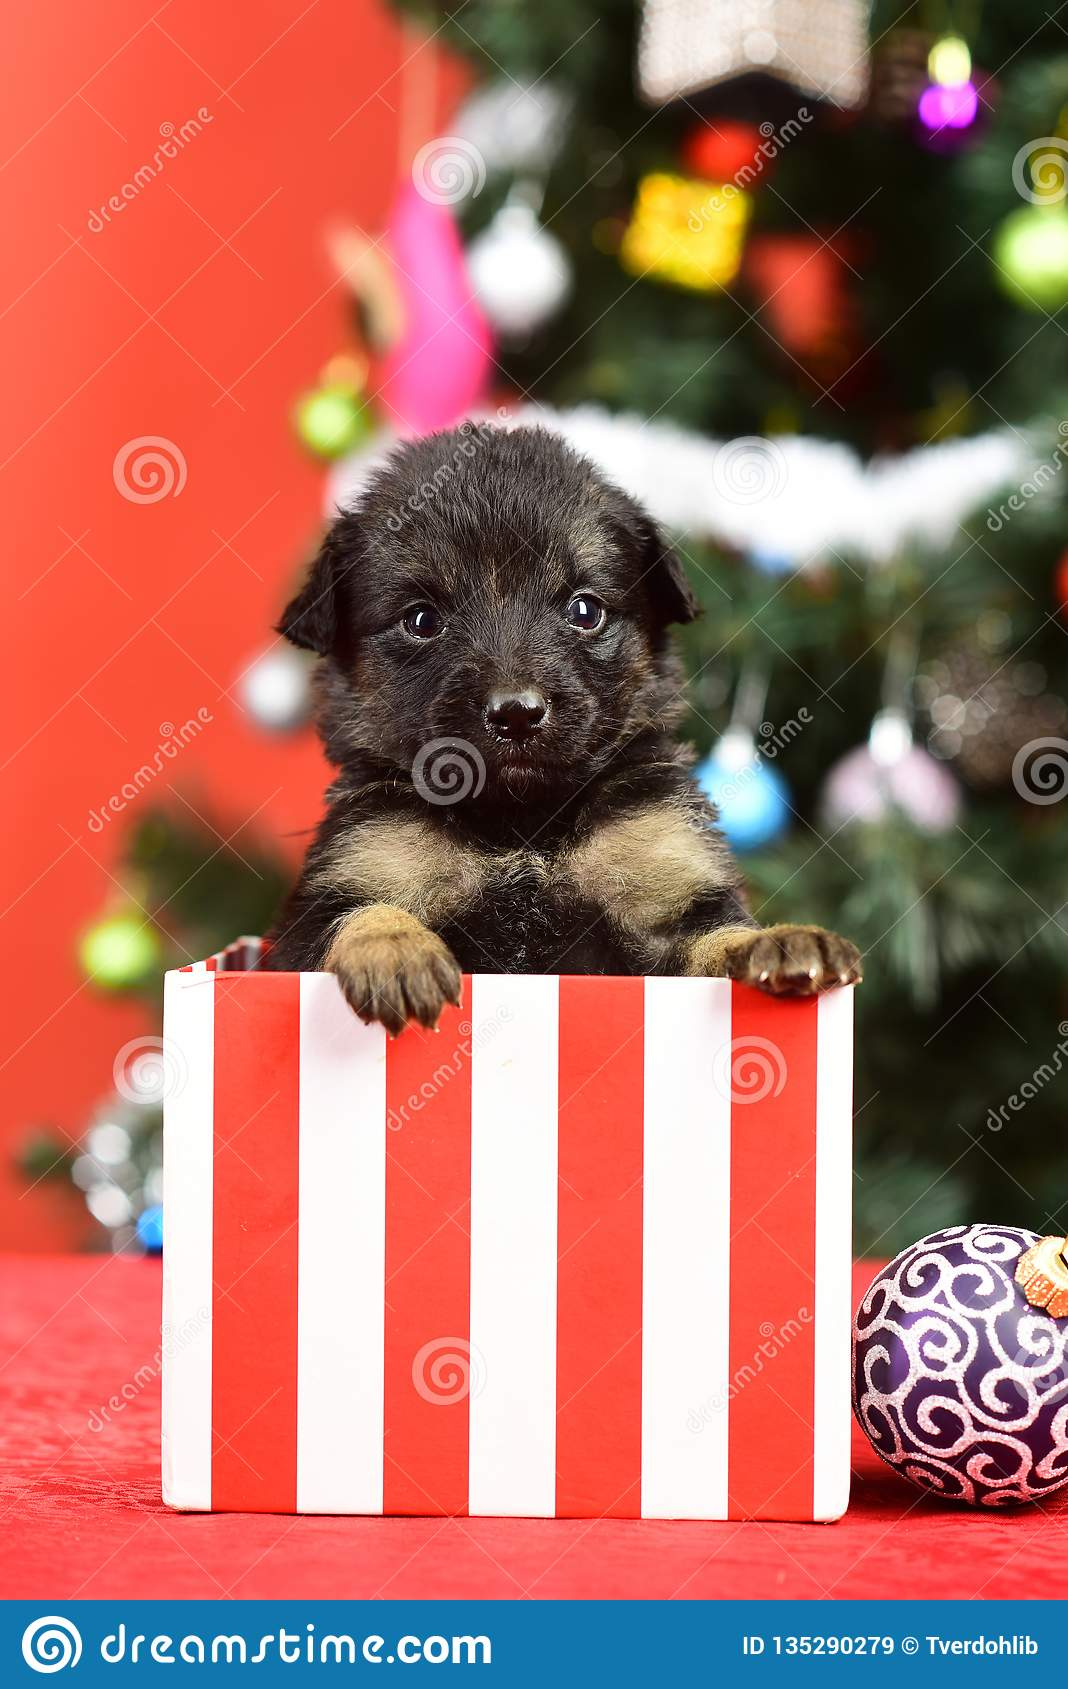 New Year Of Dog Puppy In Present Christmas Box Stock Image Image Of Cute Colorful 135290279